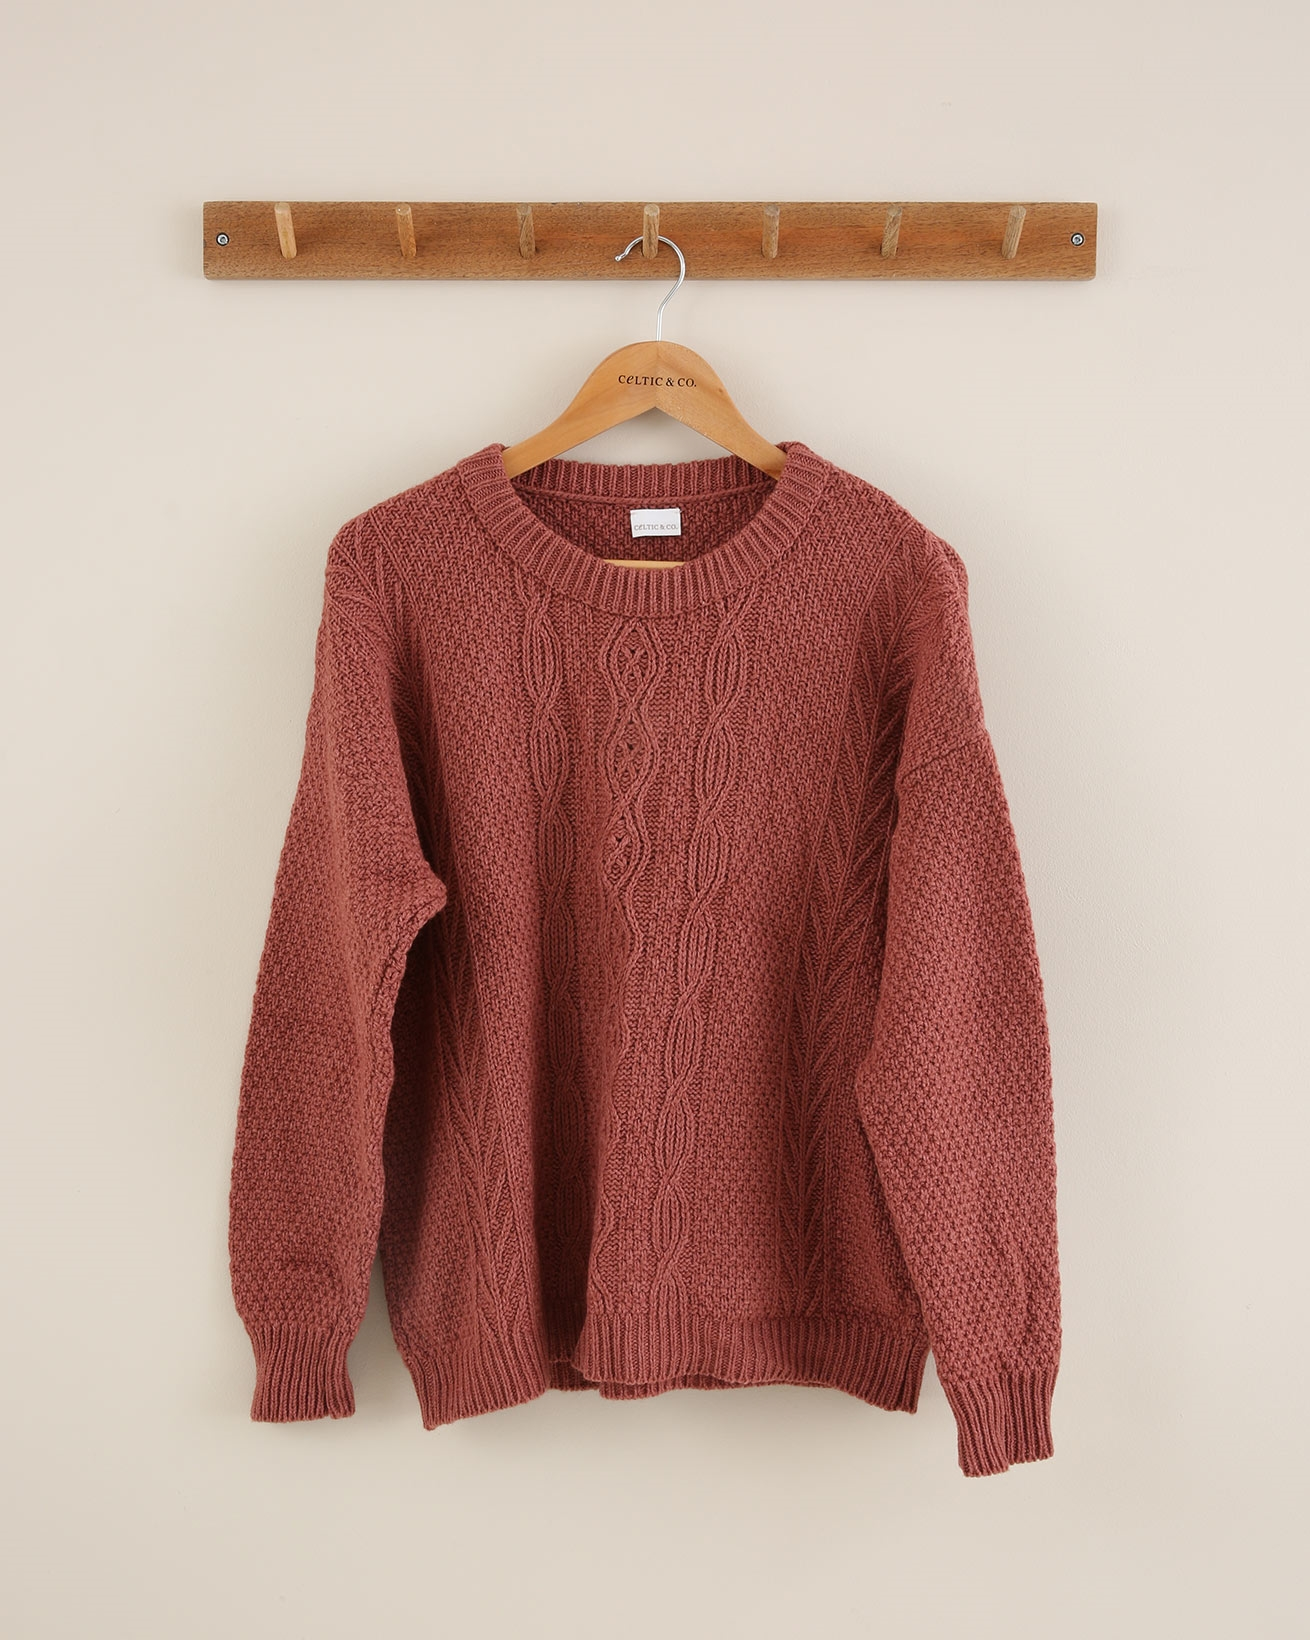 Cable Crew Neck Jumper - Size Small - Antique Rose - 1650